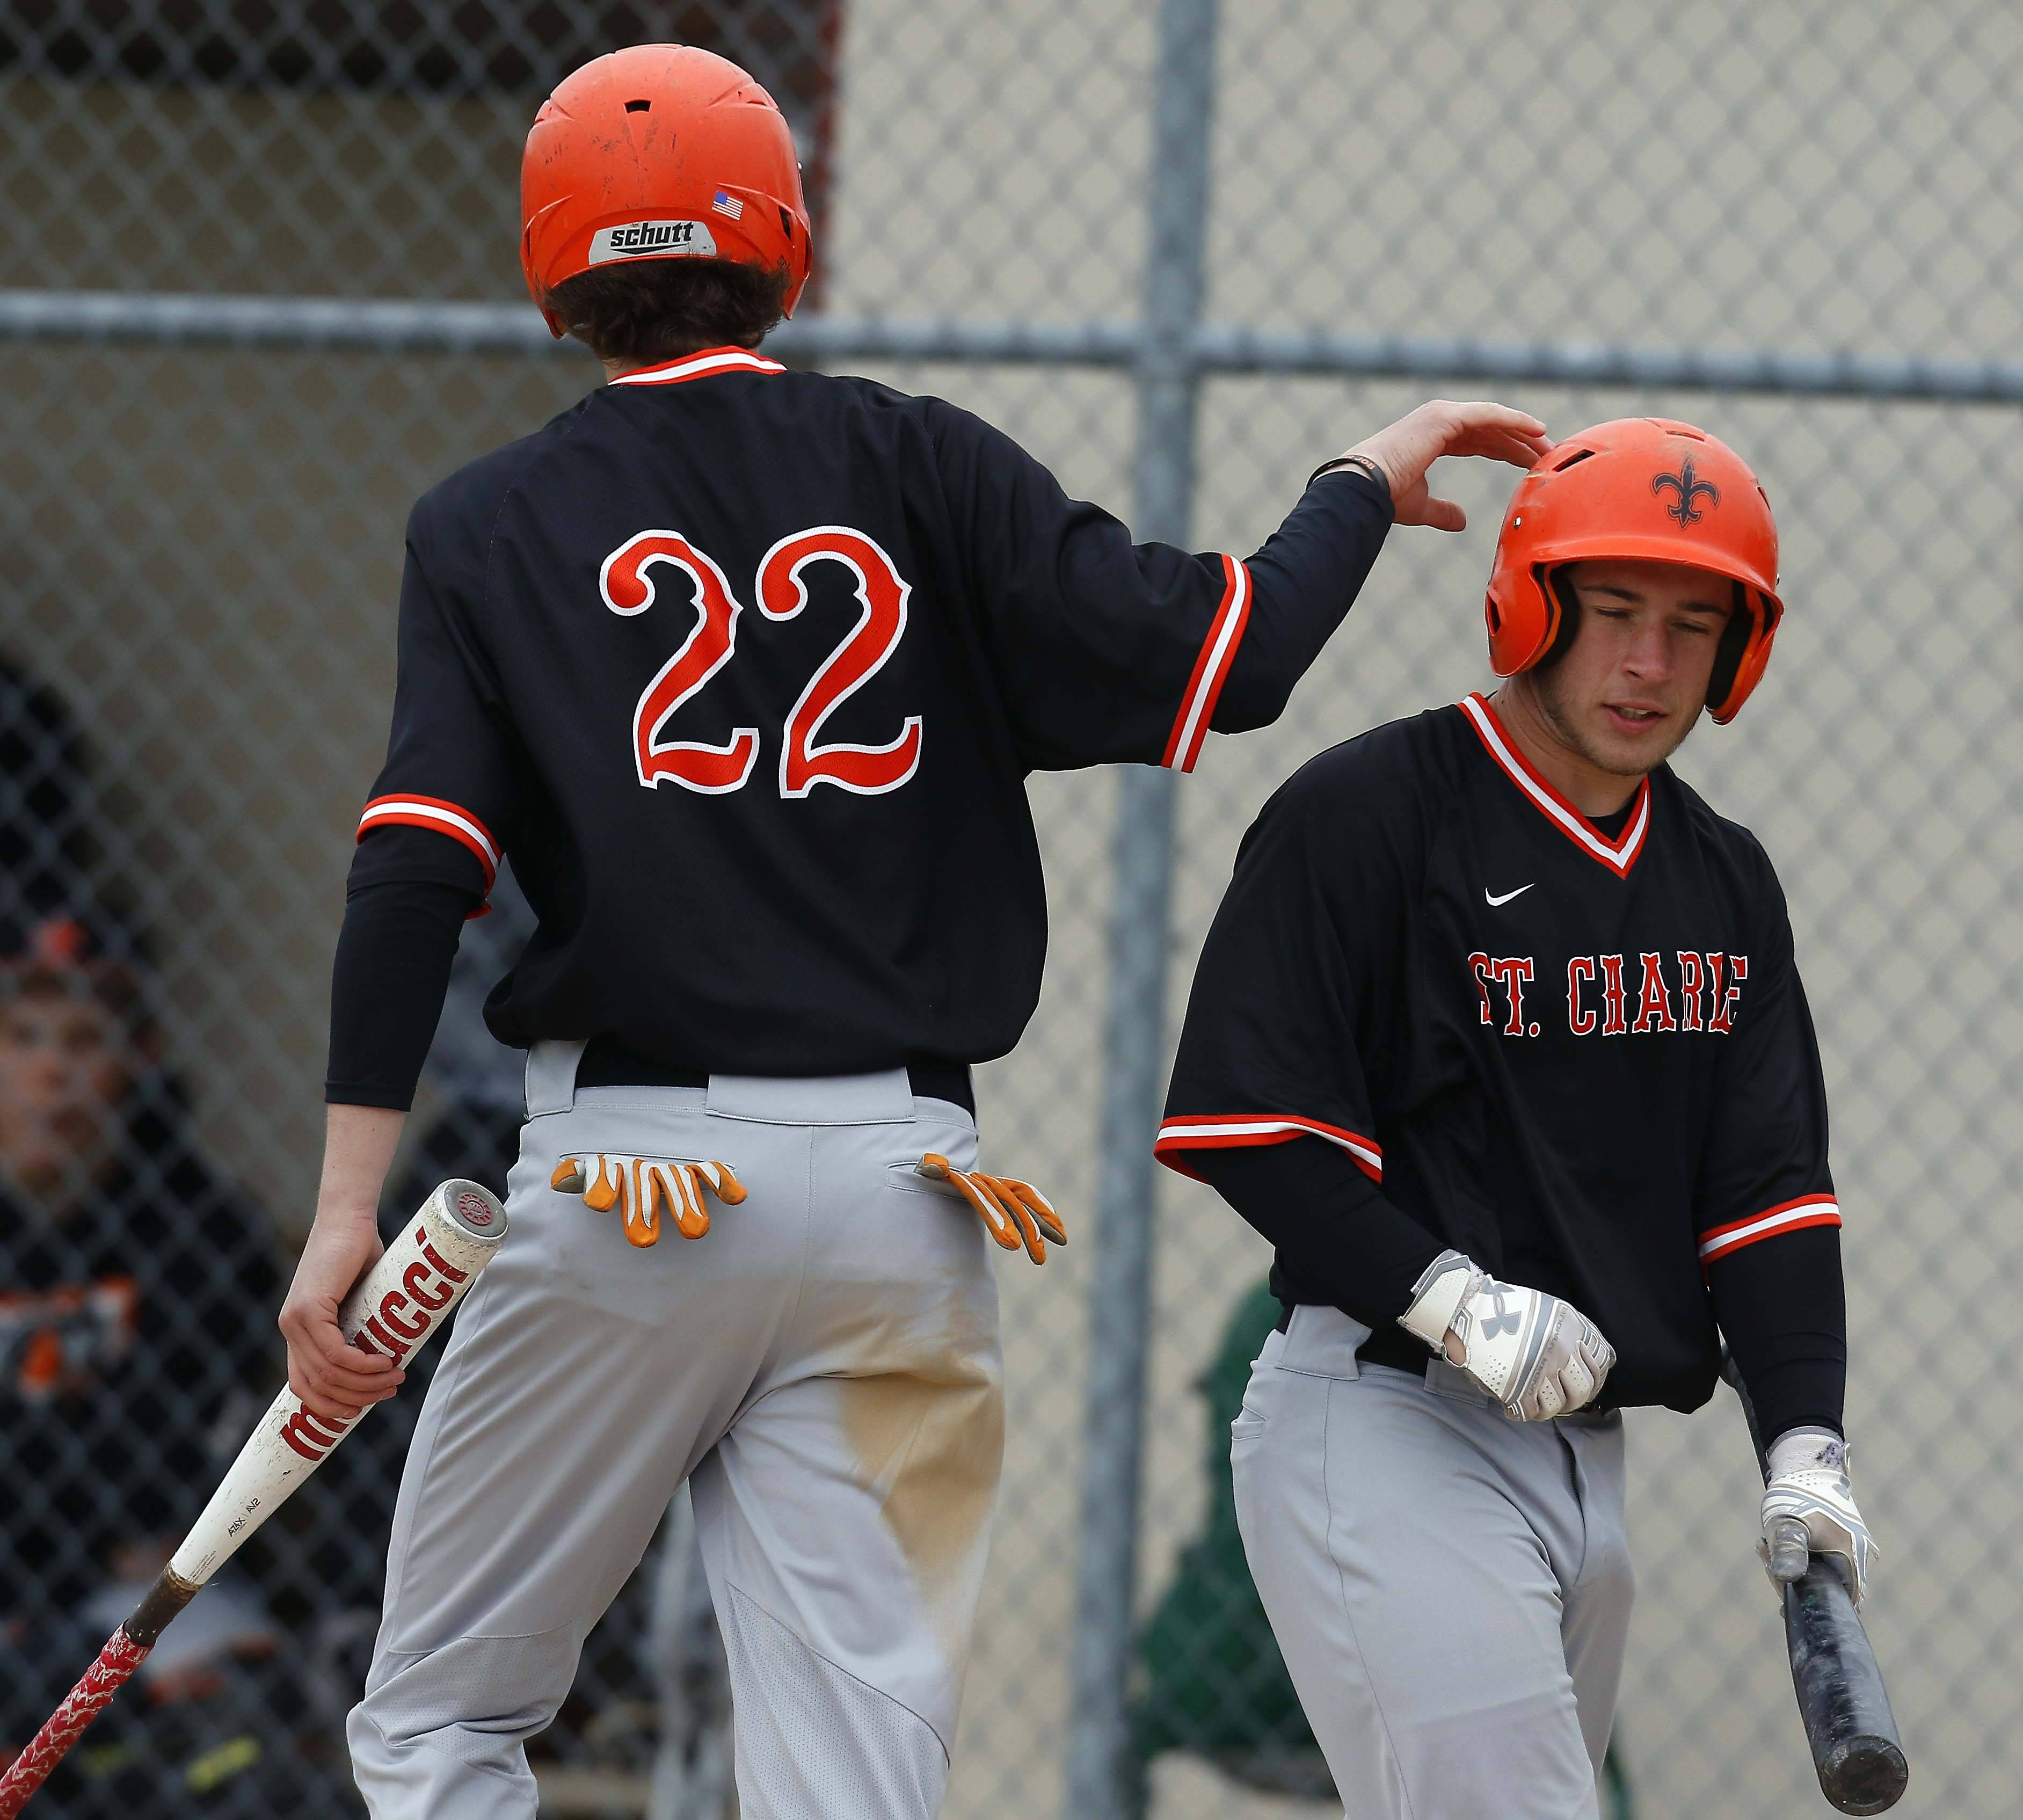 St. Charles East's Niko Klebosits, left, is greeted by Nico Piaskowy after crossing the plate on an RBI single by Cole Conn Saturday during baseball in Aurora.